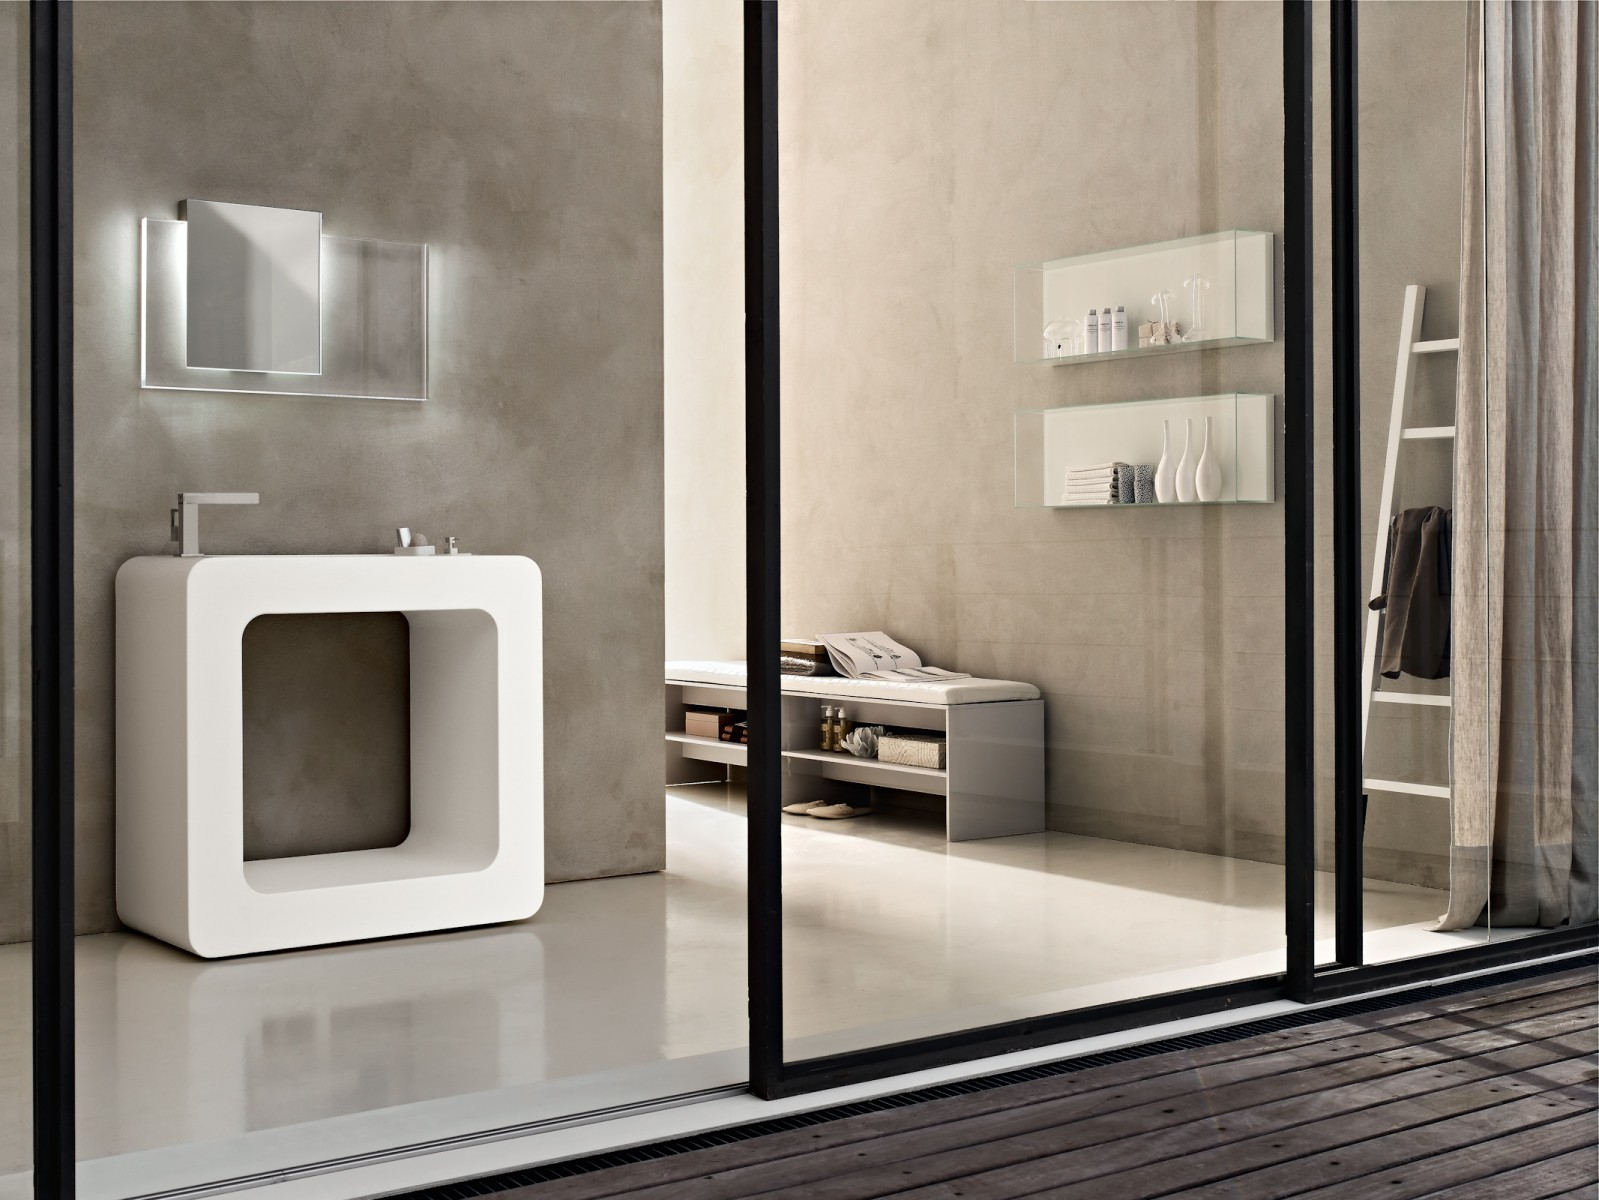 Ultra modern italian bathroom design for Small bathroom designs 2014